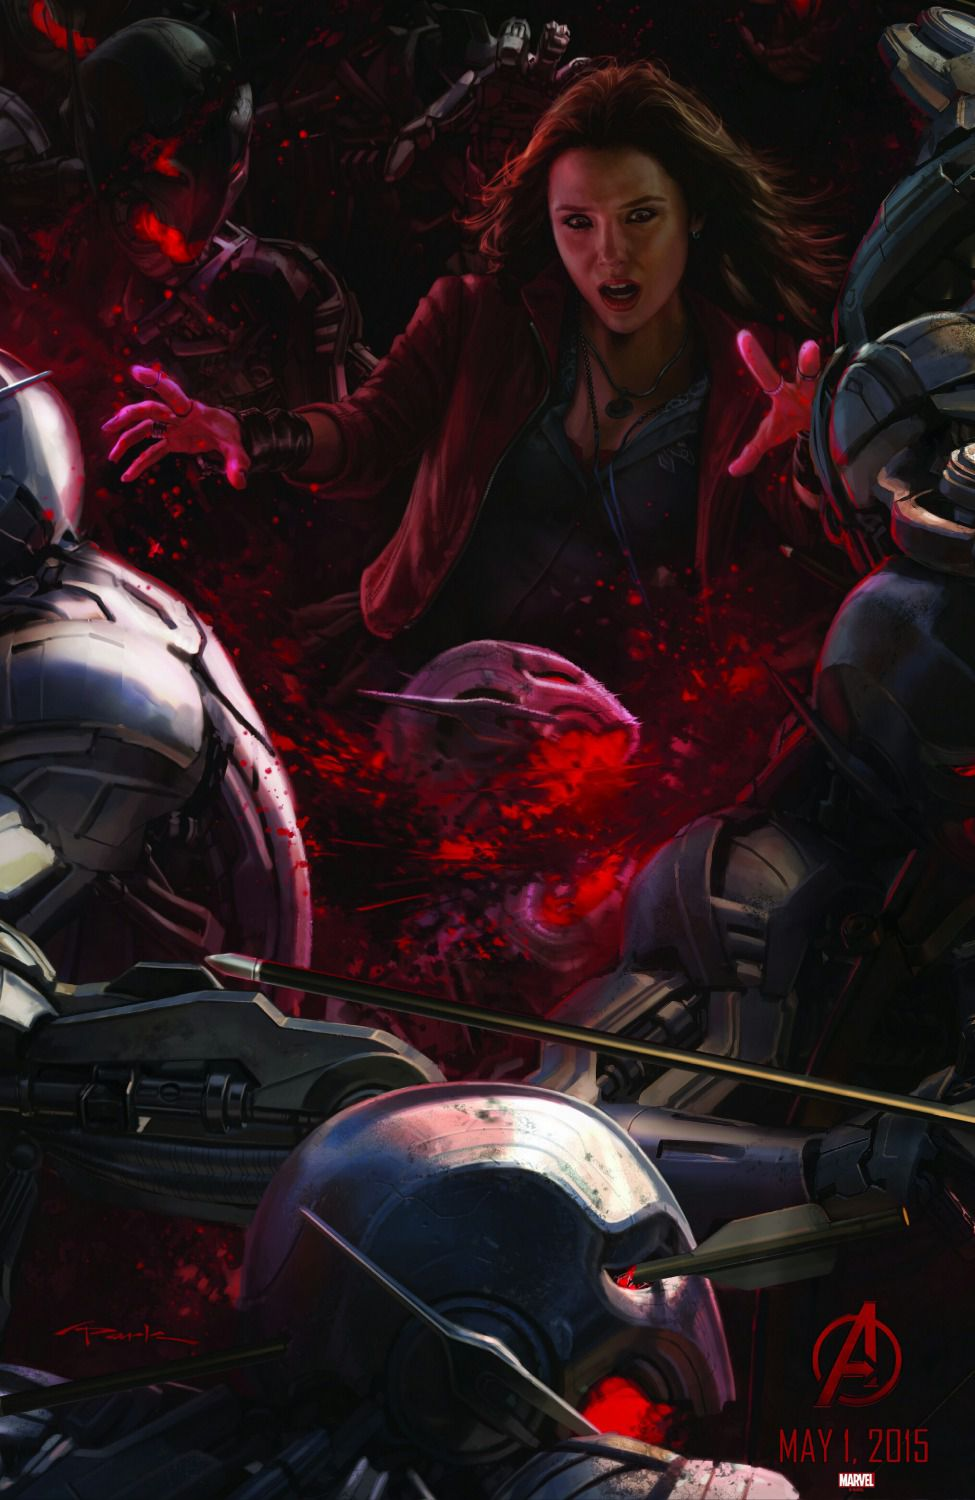 Avengers 2 - Age of Ultron . poster battle